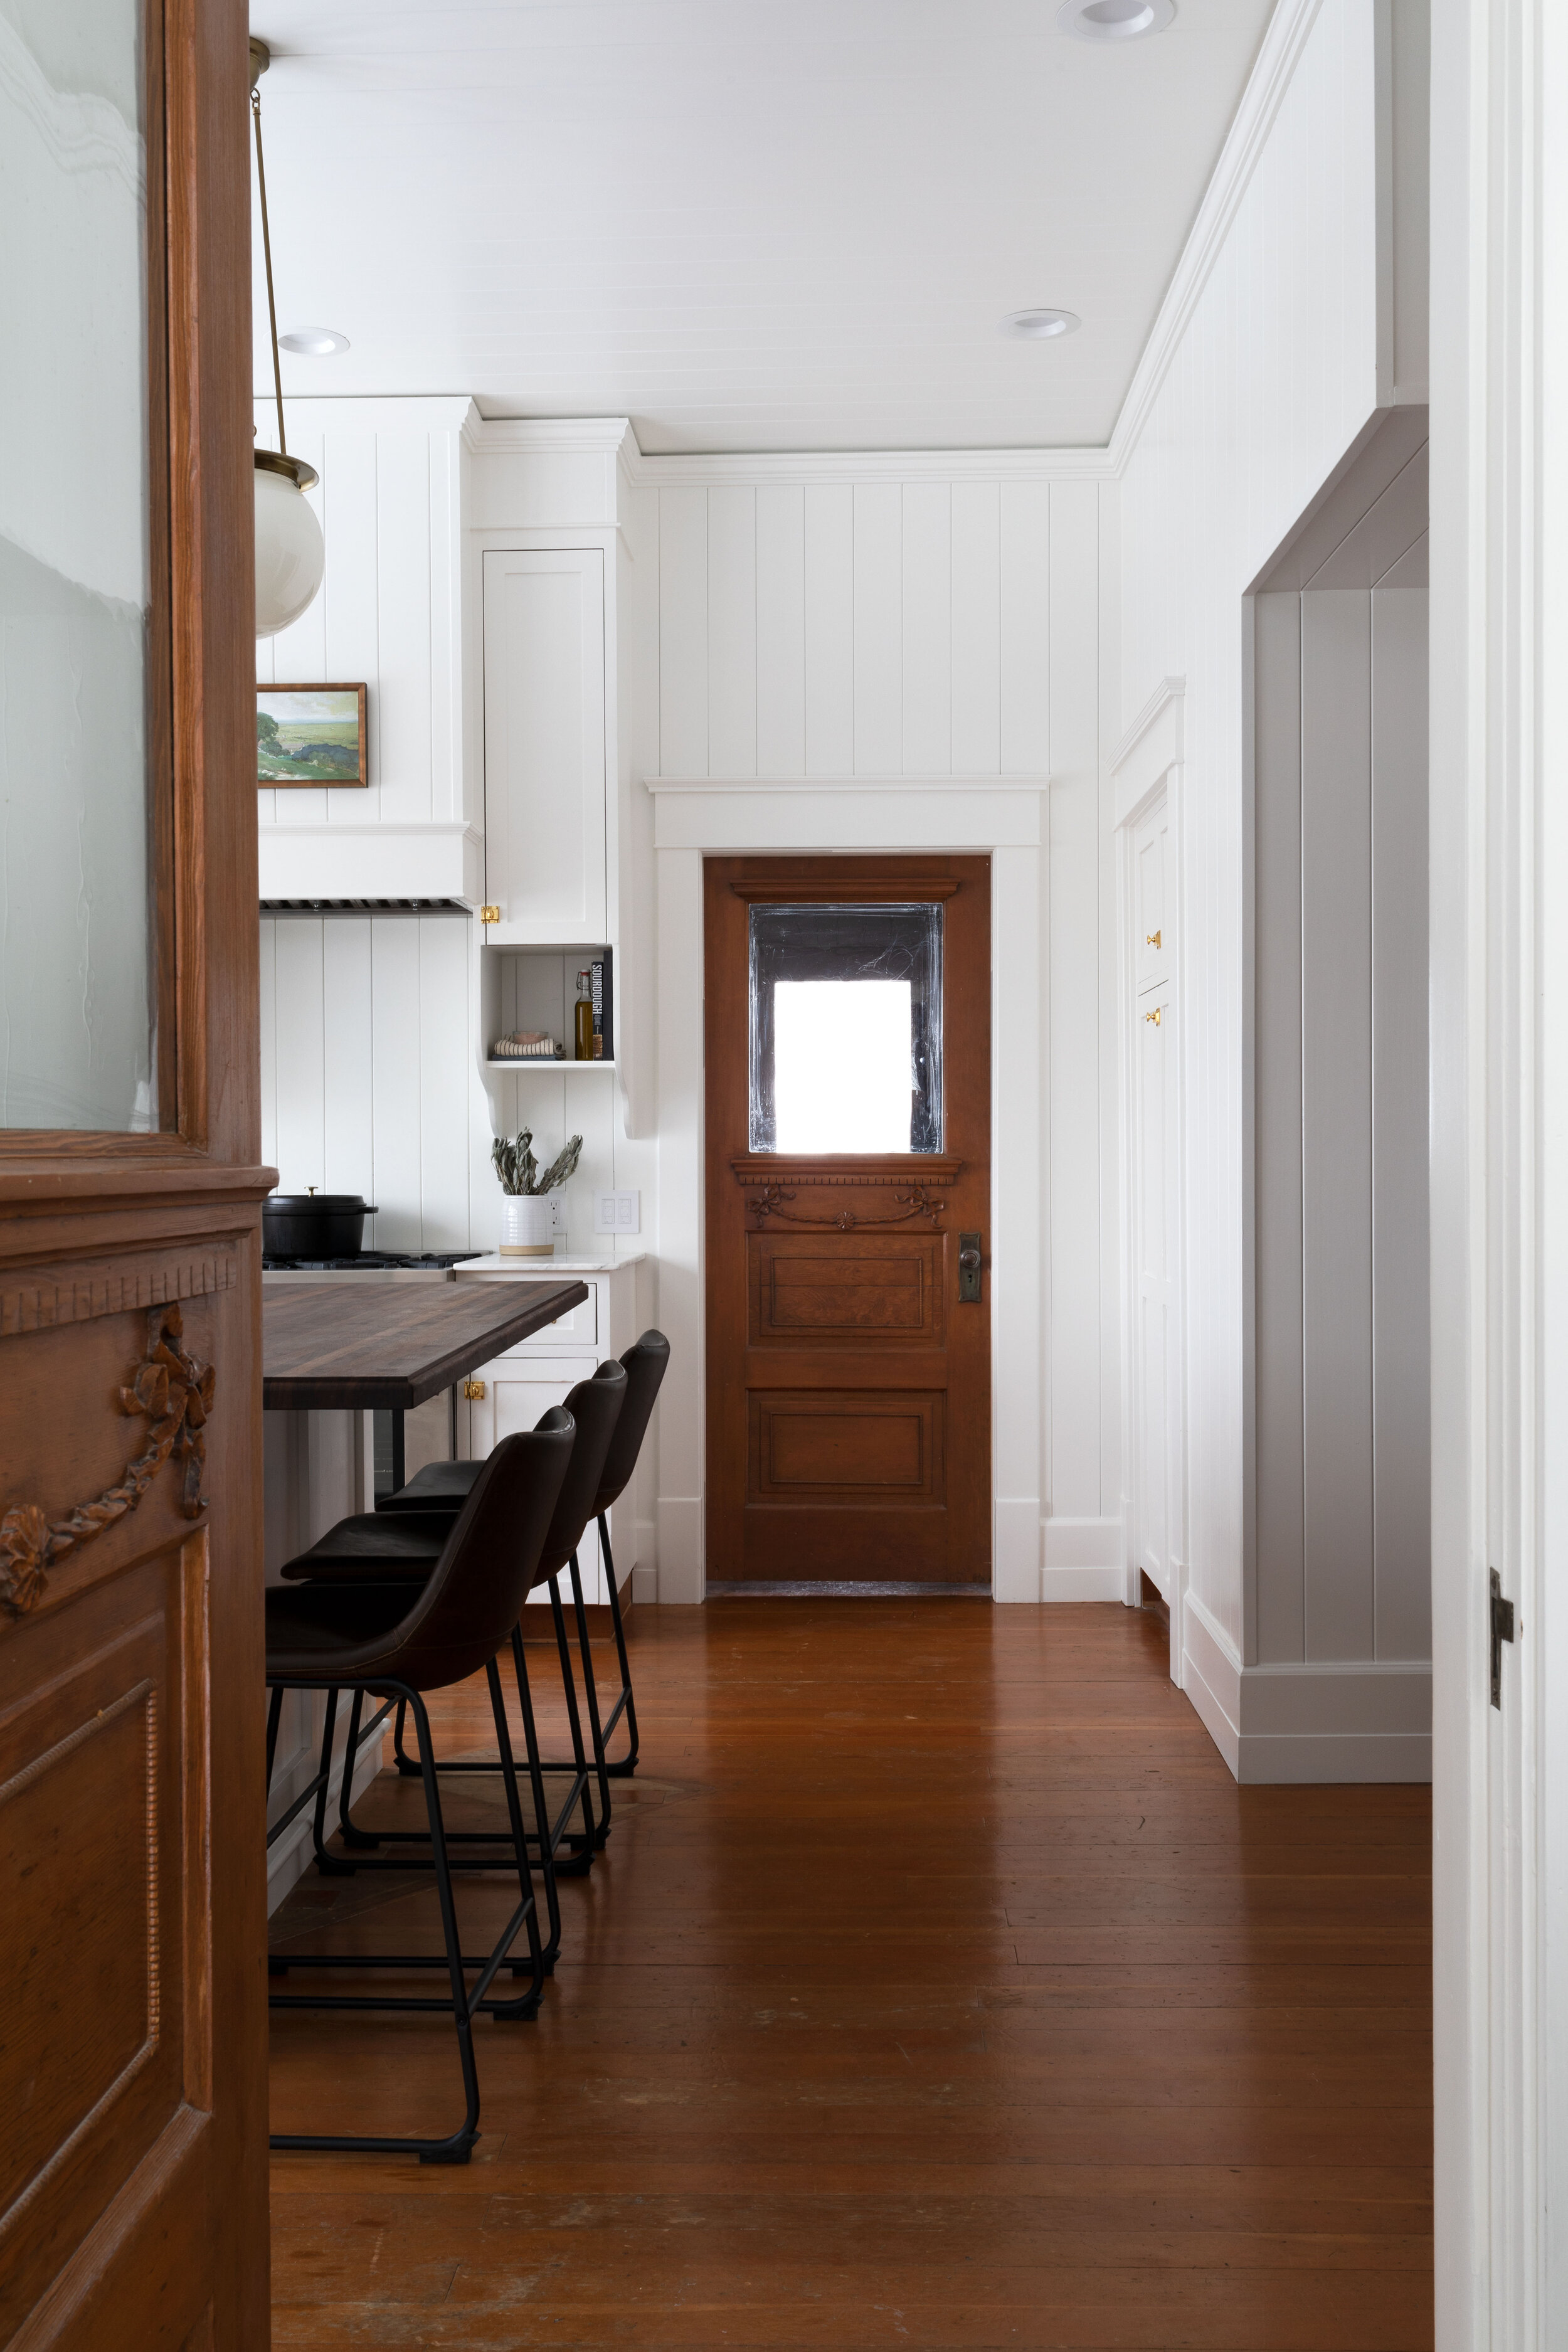 The Grit and Polish - Farmhouse Country Kitchen Reveal 3.0 5 web.jpg